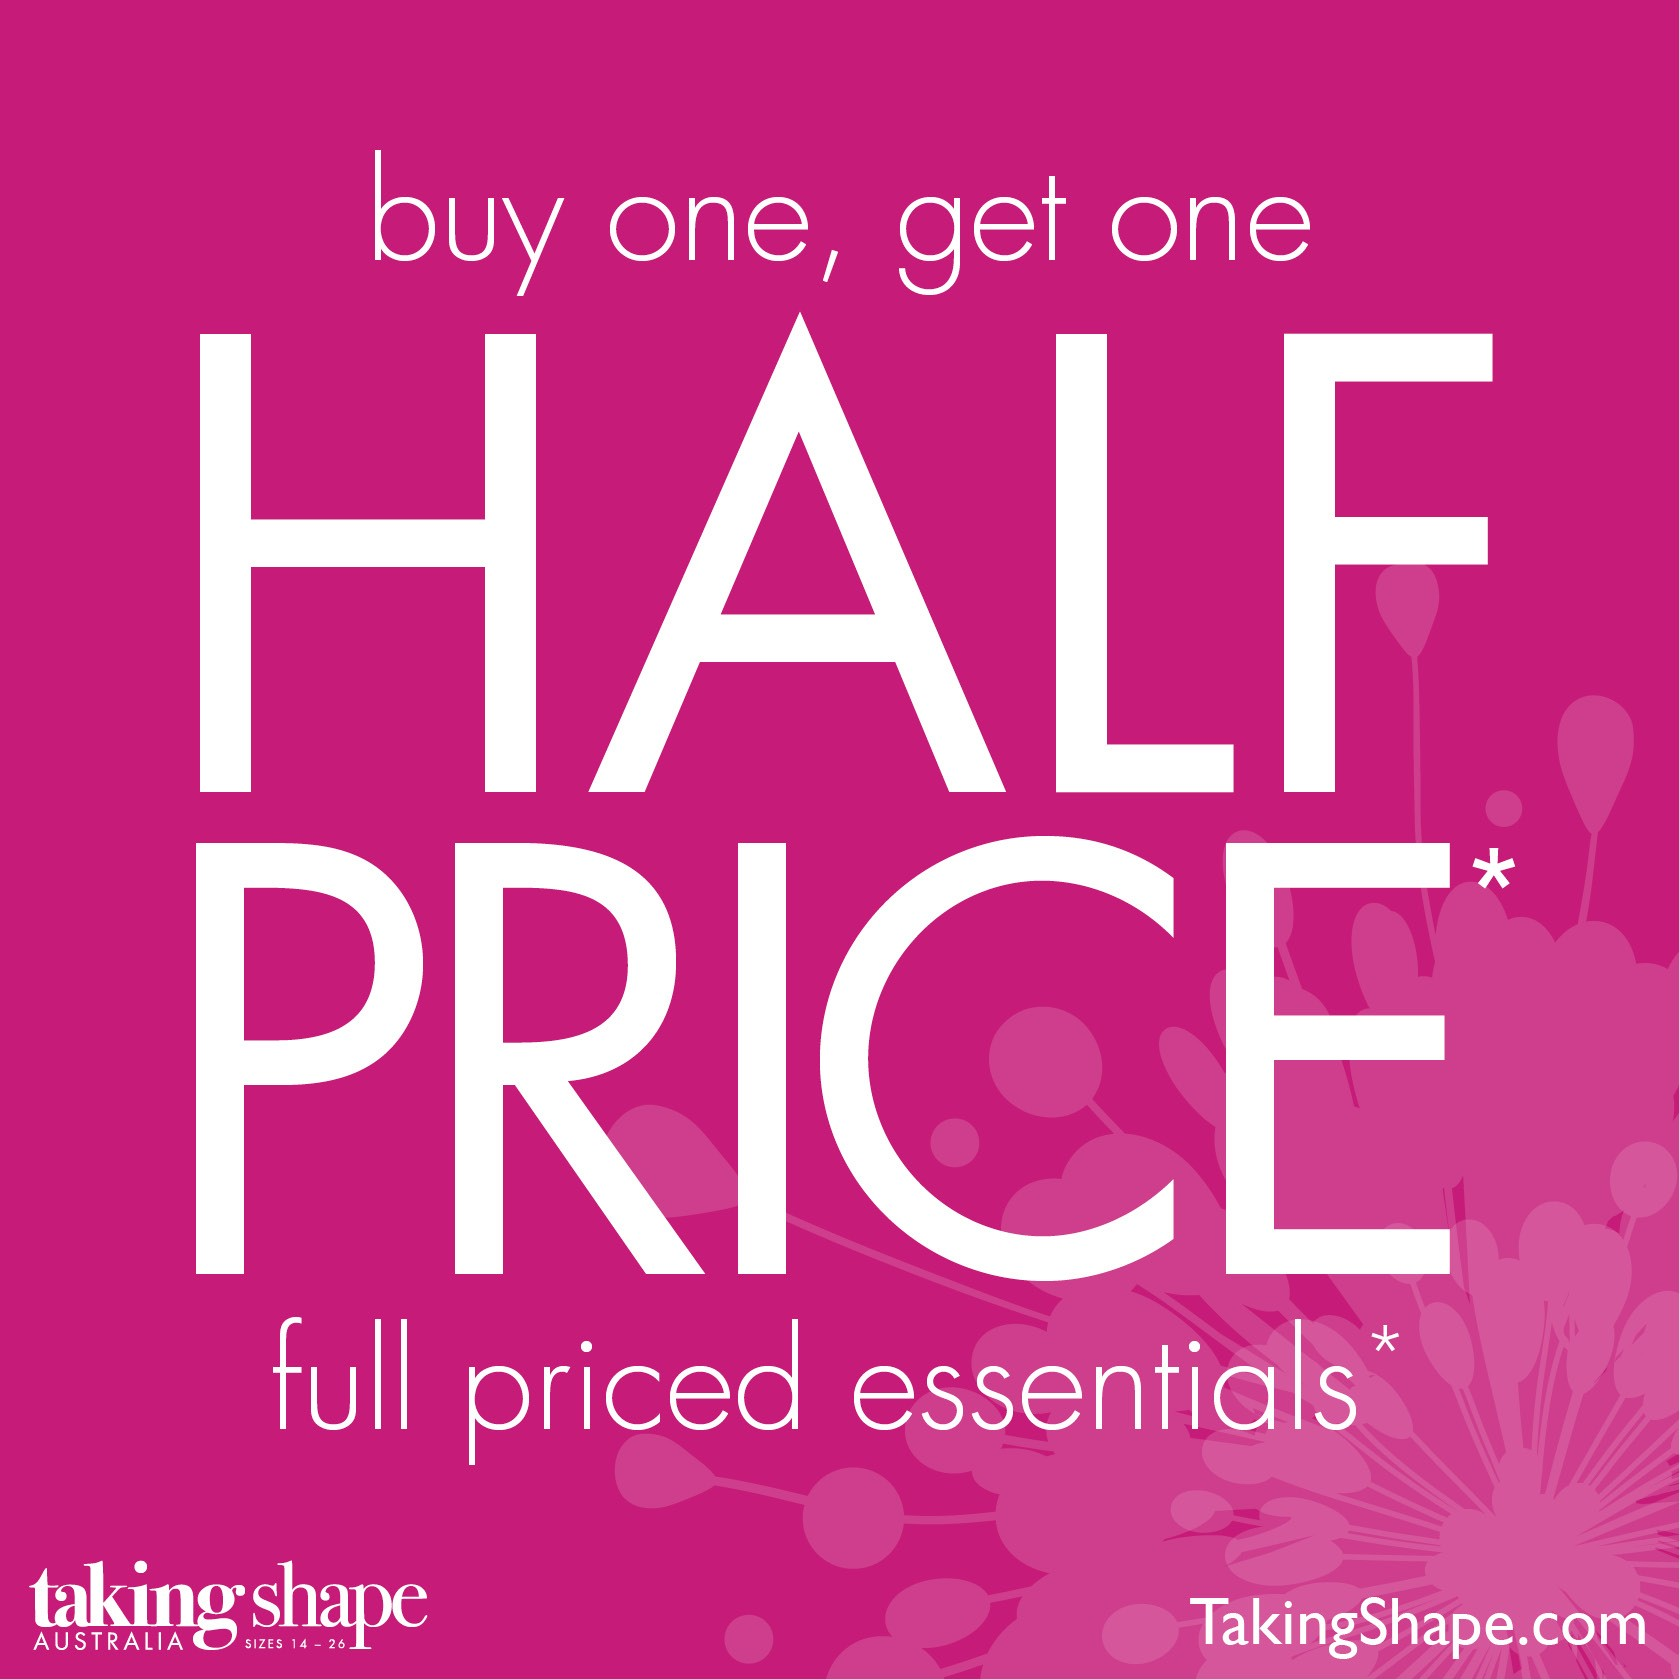 Buy One Get One: Buy One Get One Half Price